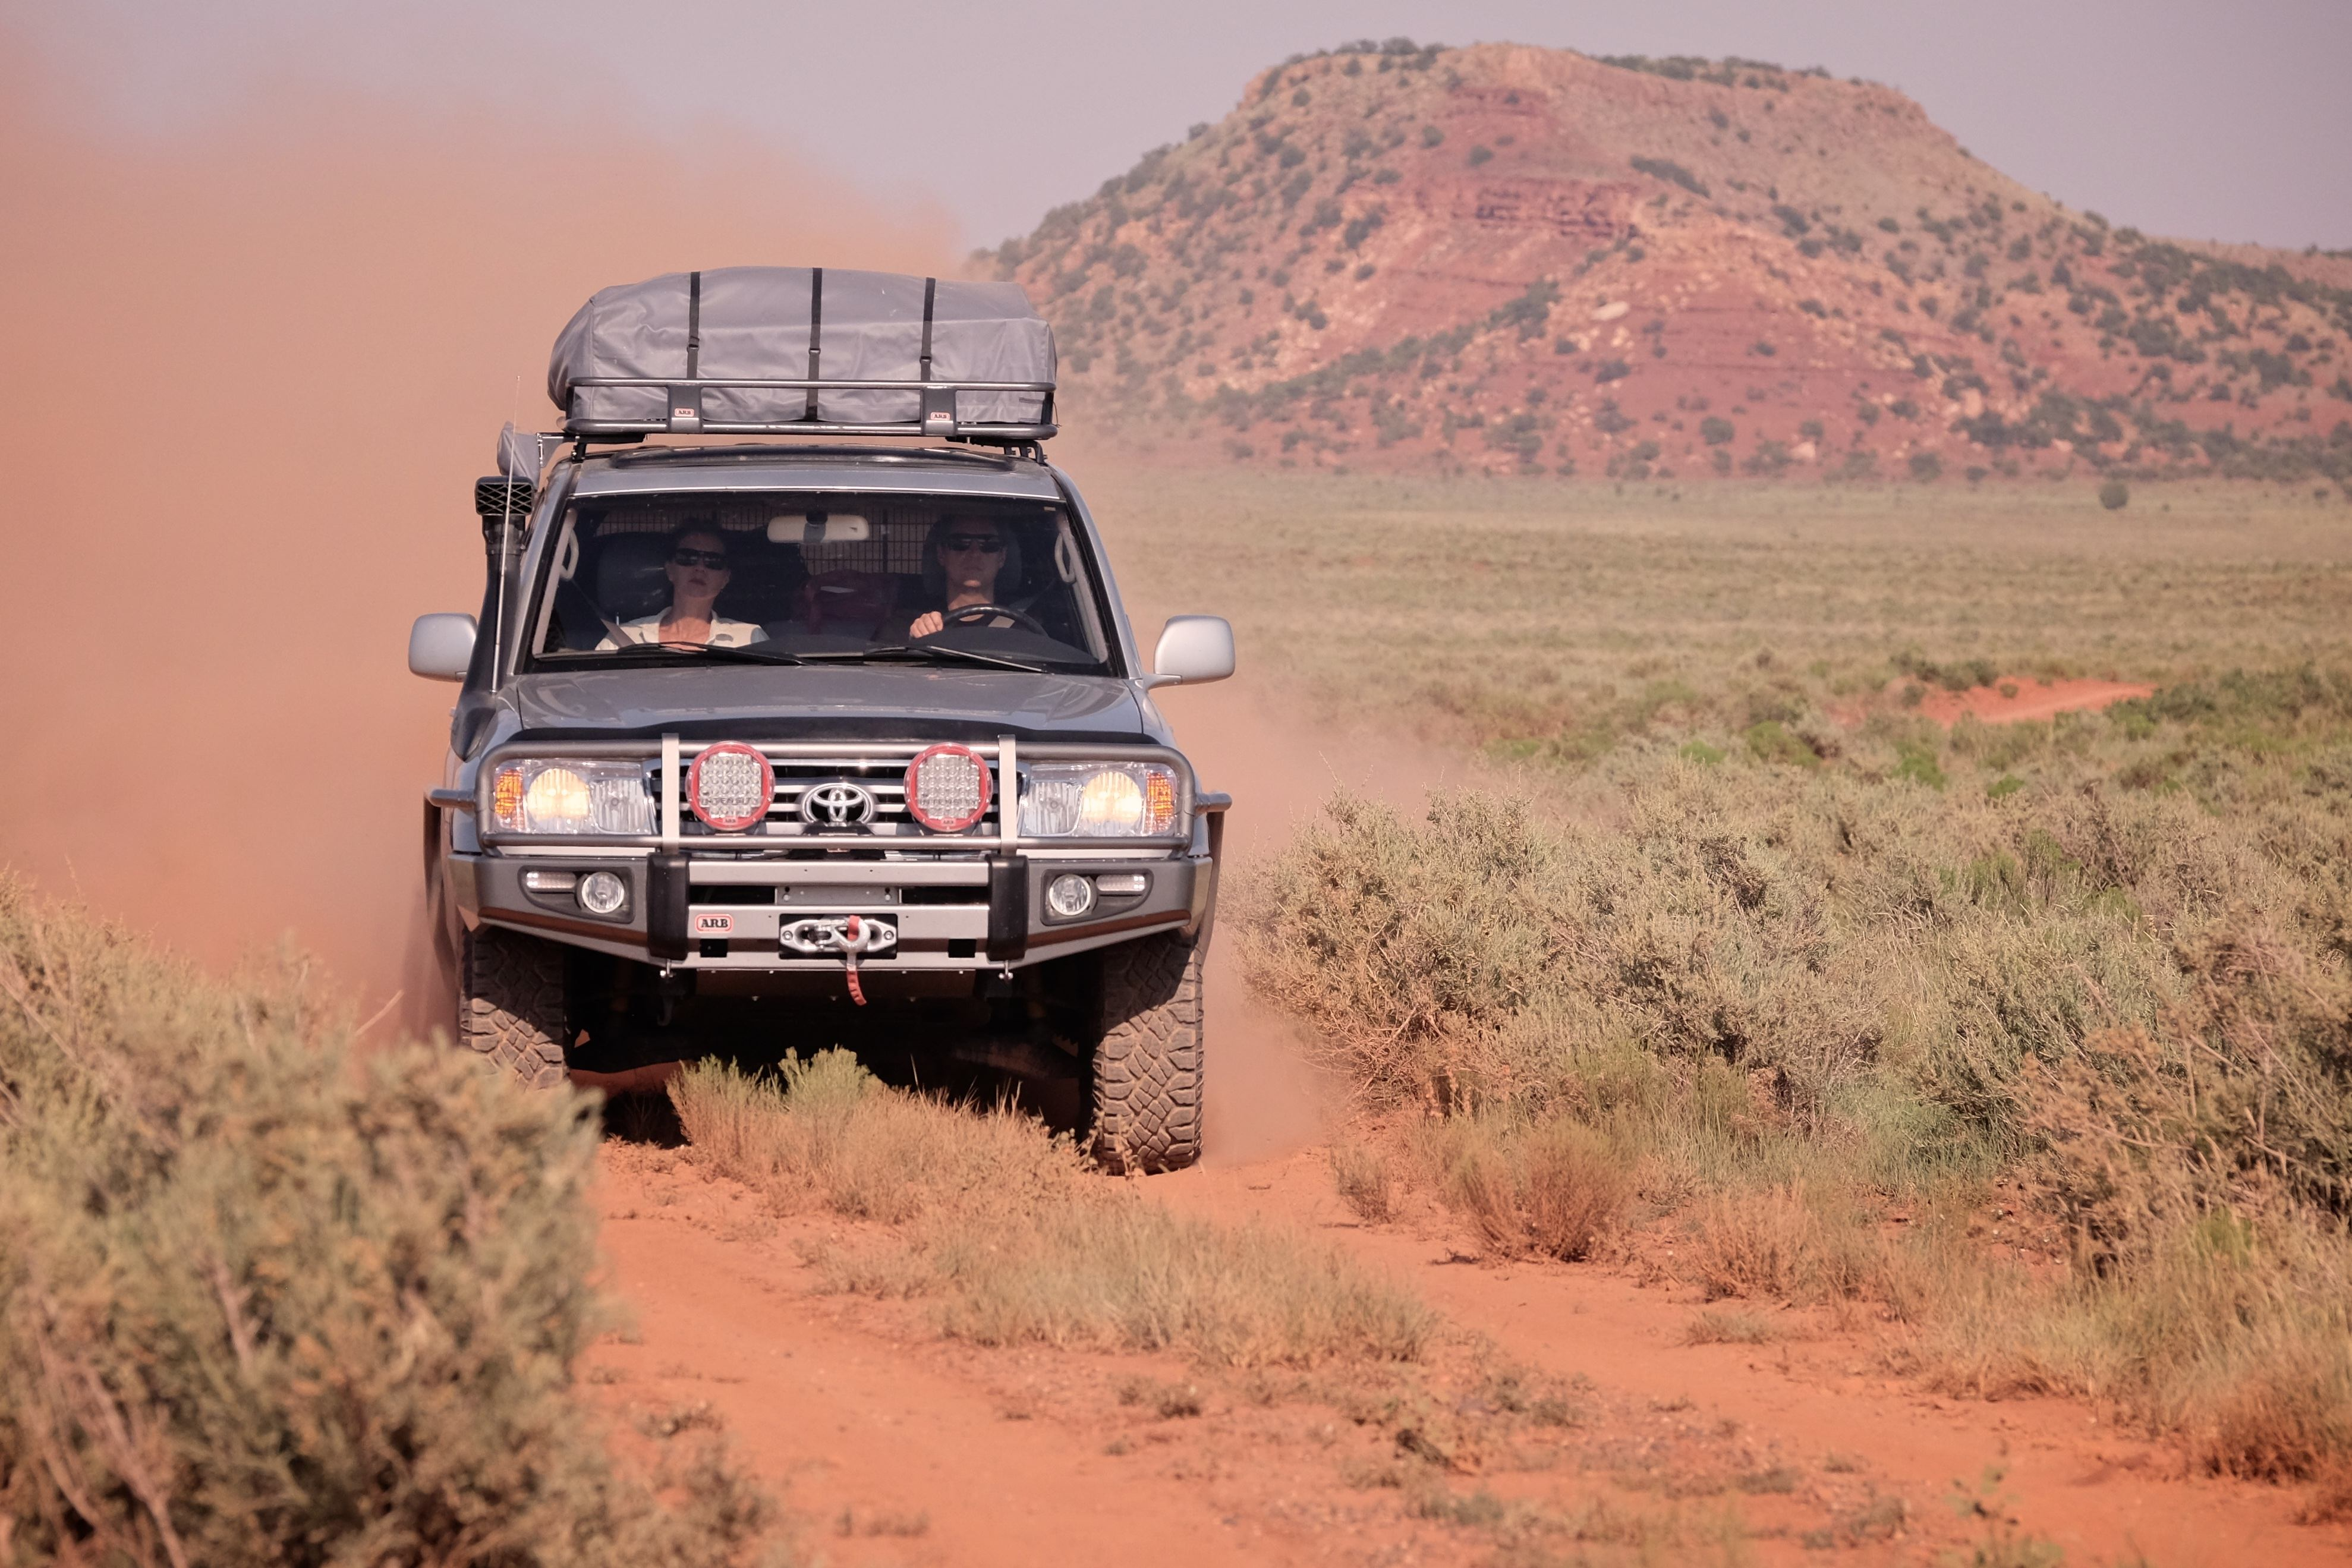 Featured Vehicle: ARB's 100 Series Land Cruiser ...